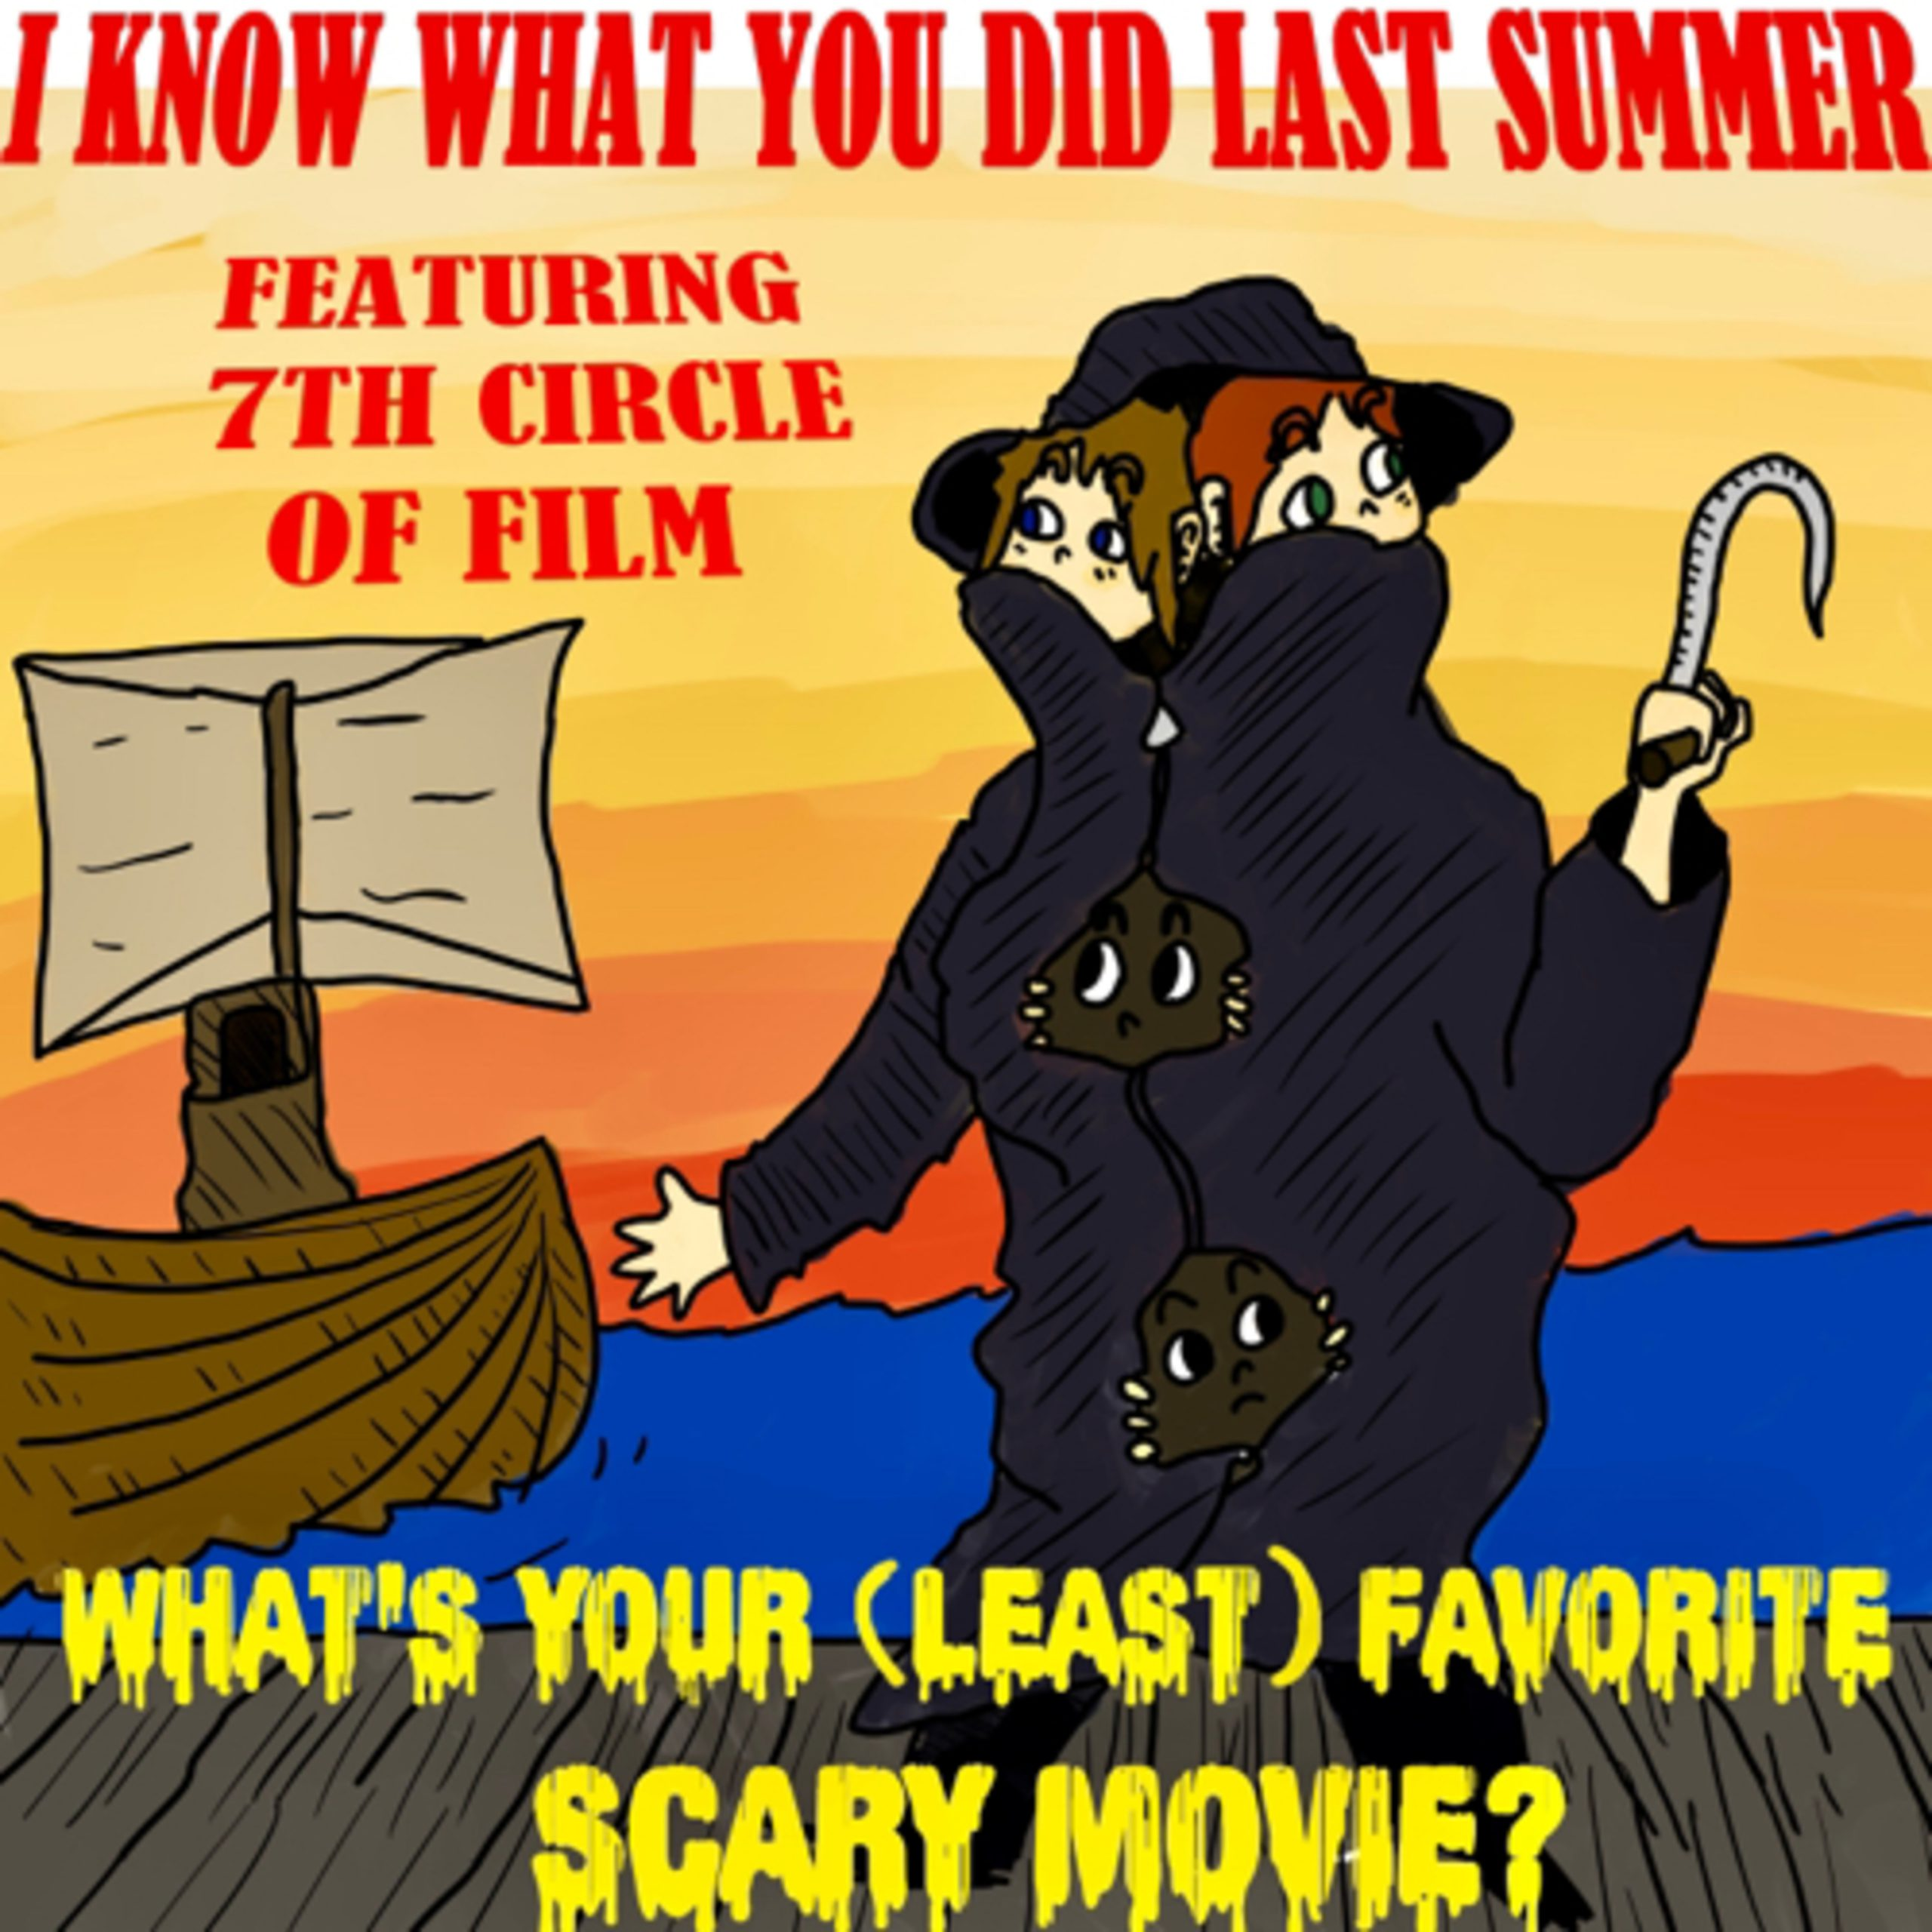 #14: I Know What You Did Last Summer (1997) – with 7th Circle of Film